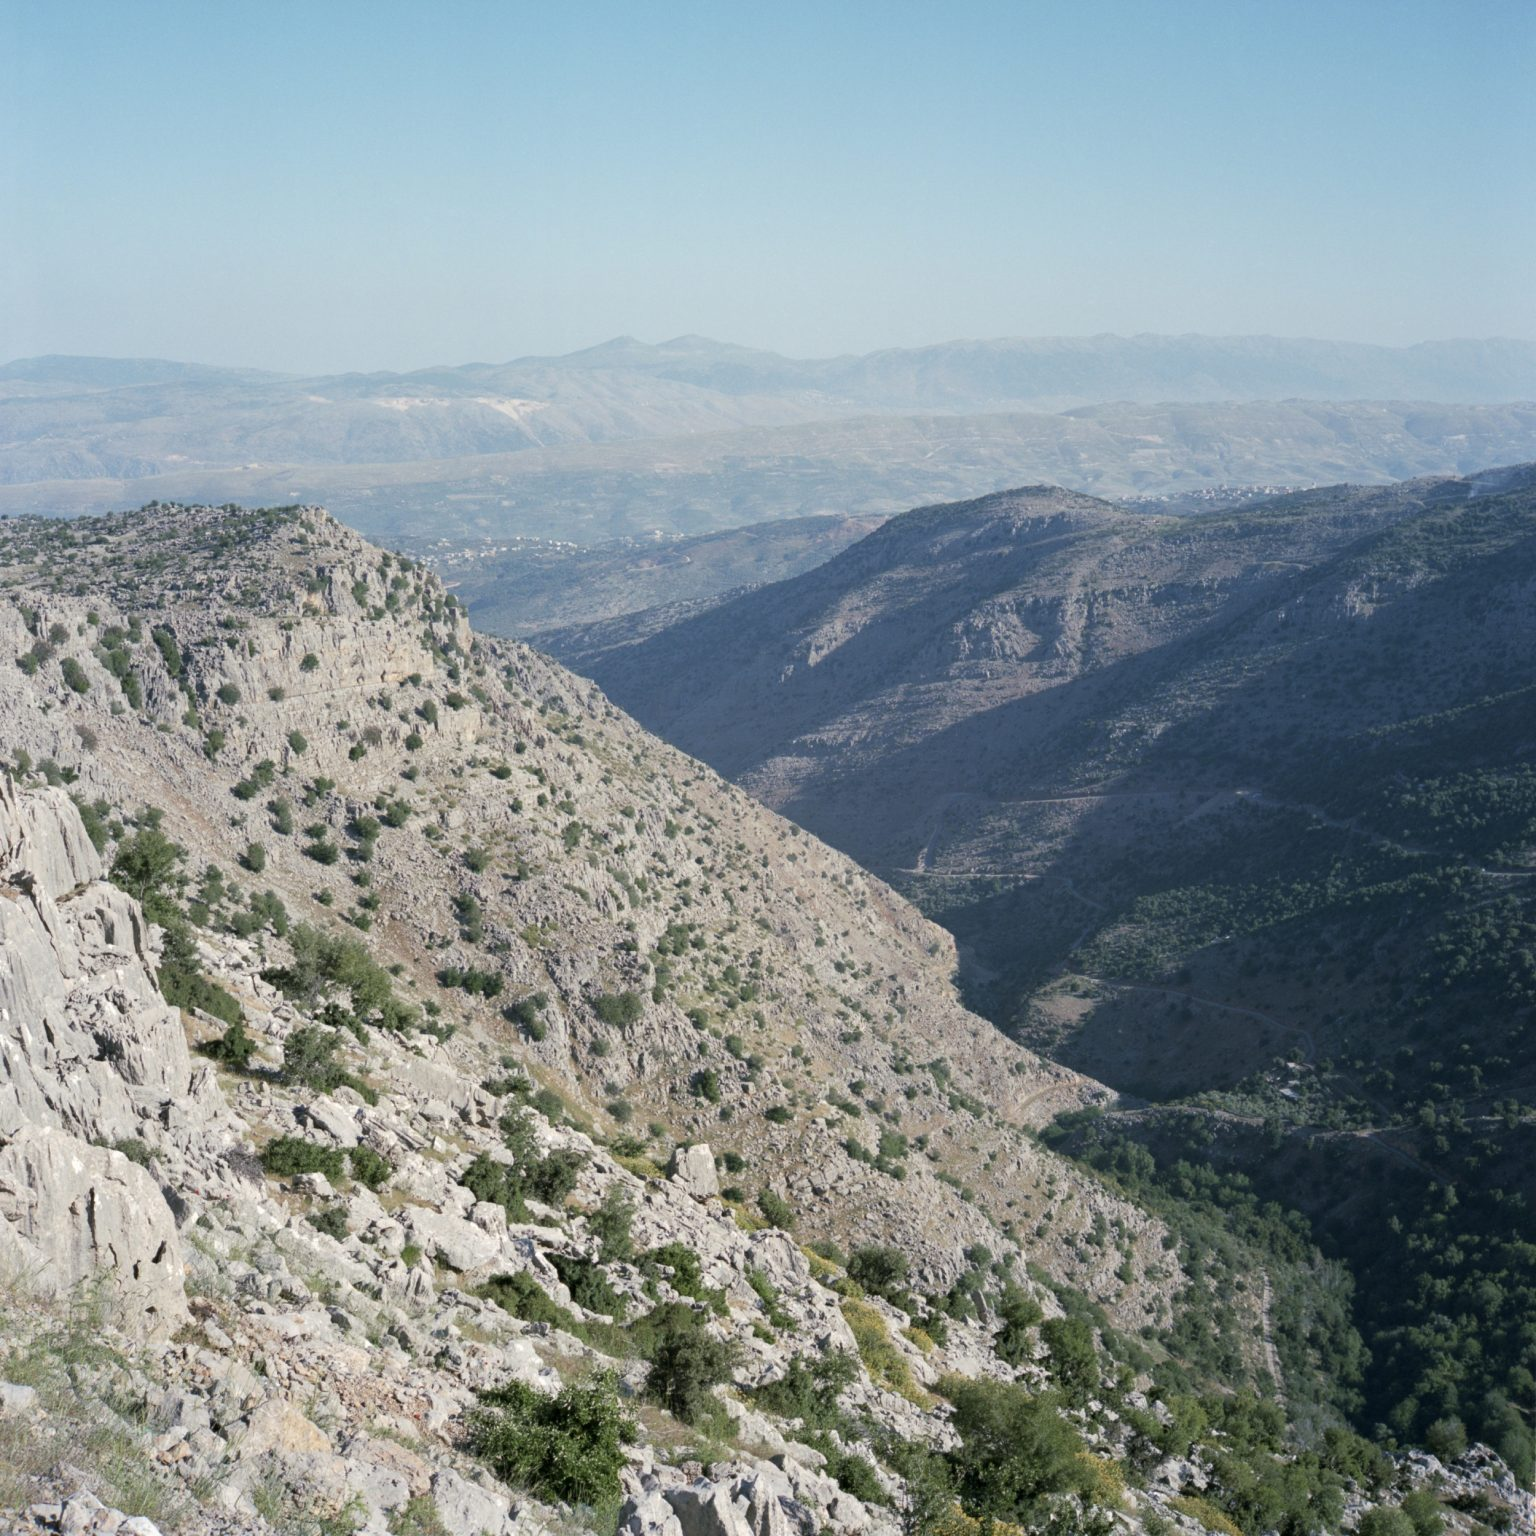 Shebaa, Lebanon. A view from the cliff near the Shebaa farms, occupied by Israel.